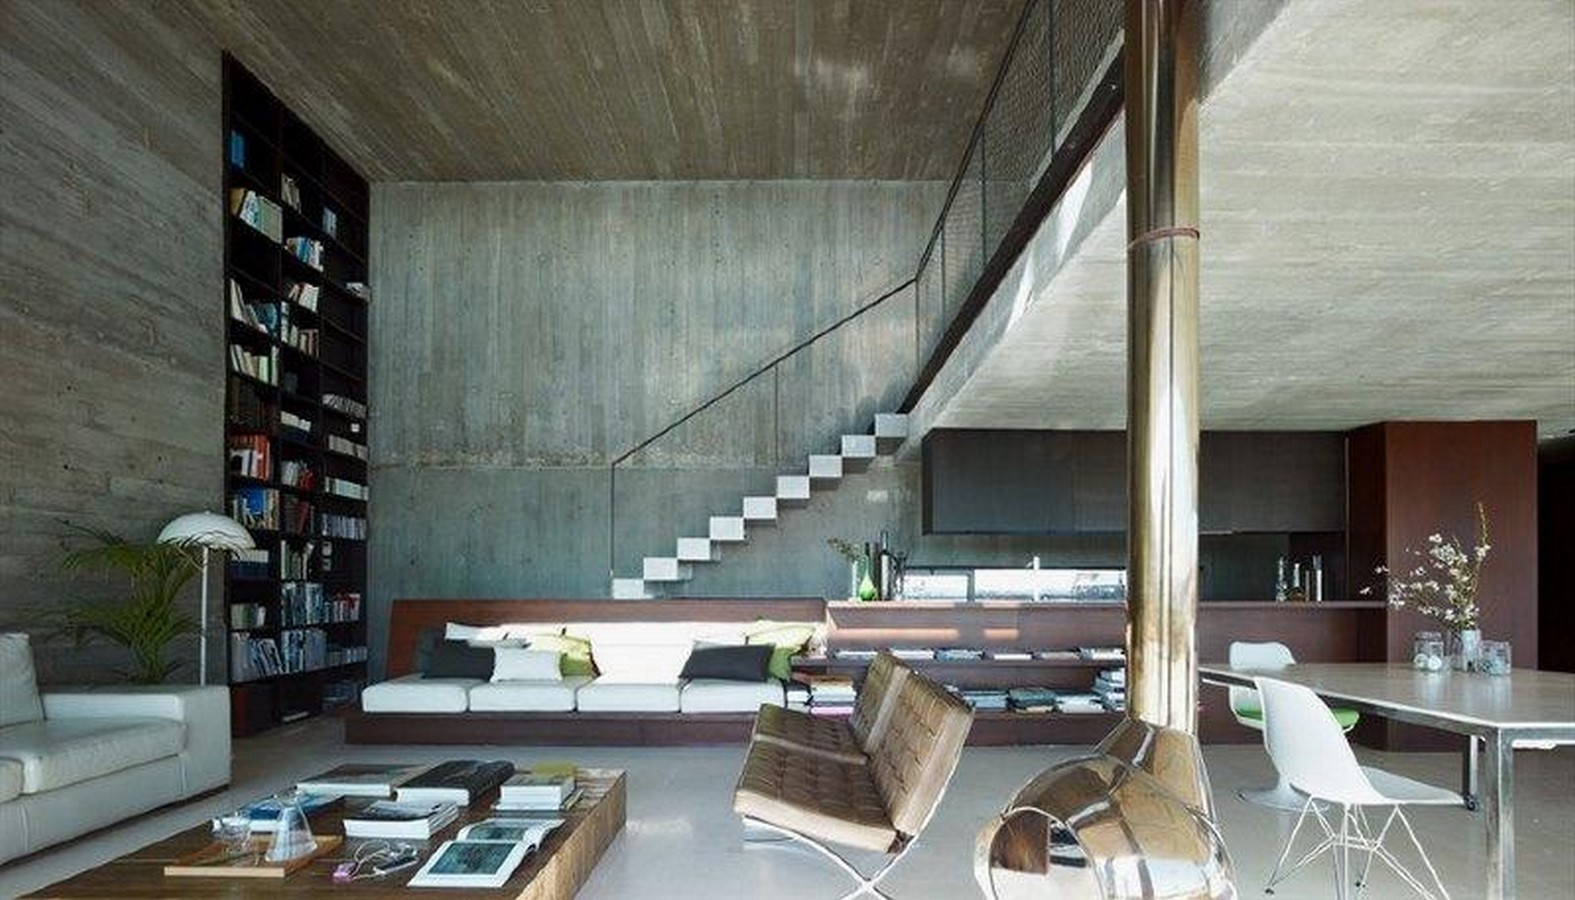 50 Living rooms enhanced by concrete - Sheet49